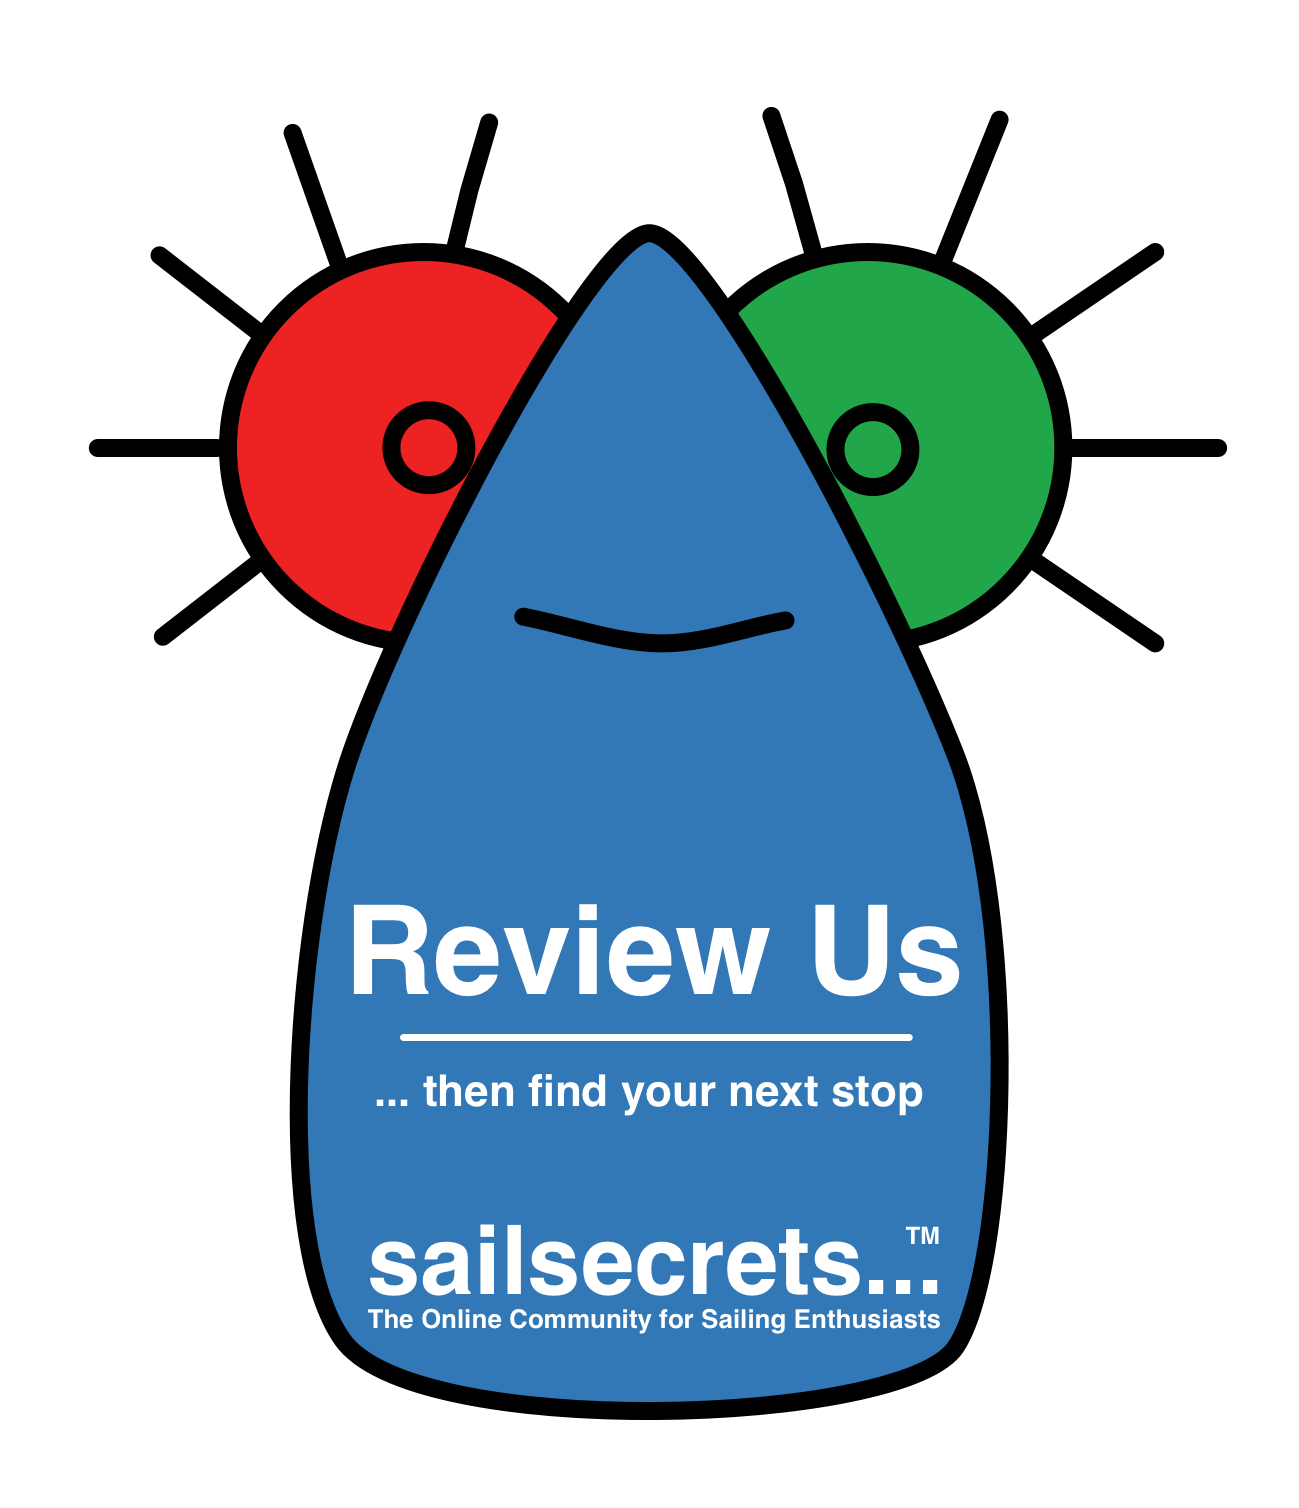 sailsecrets review